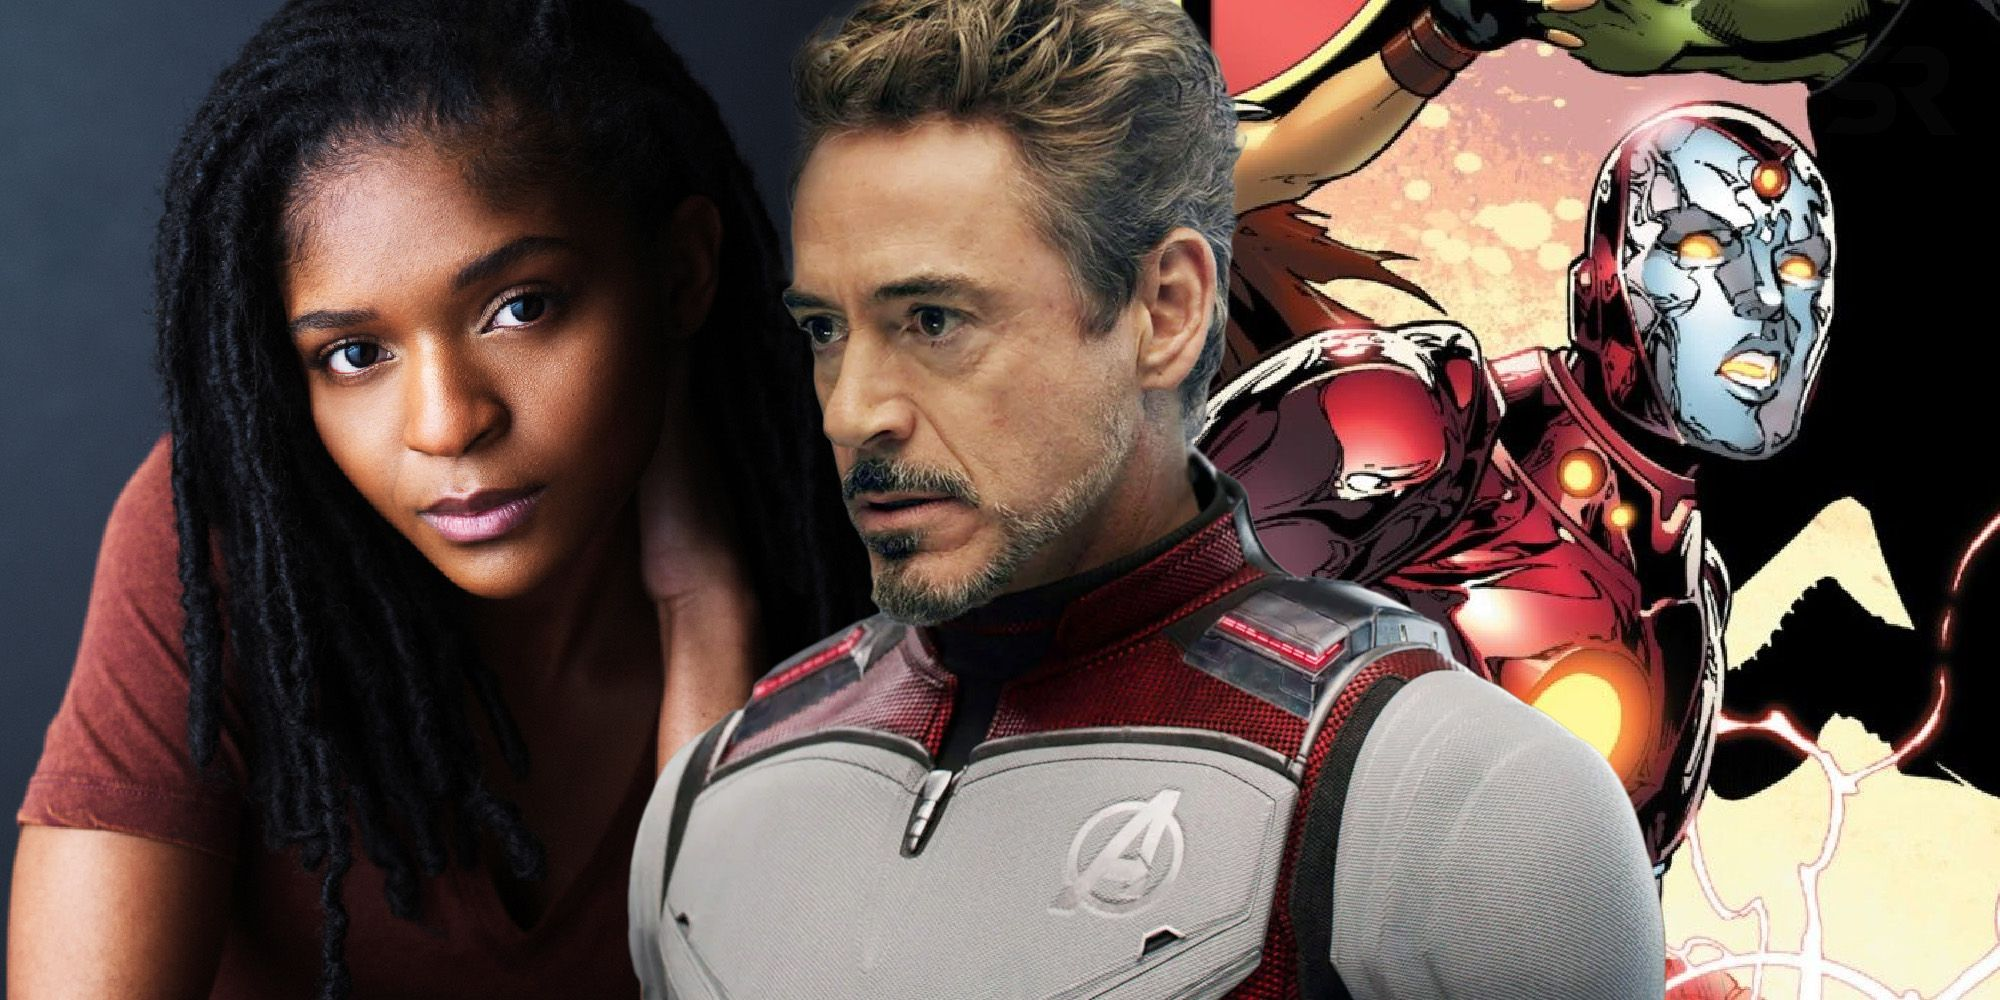 MCU's Ironheart proves it's too early for Marvel's second young iron man